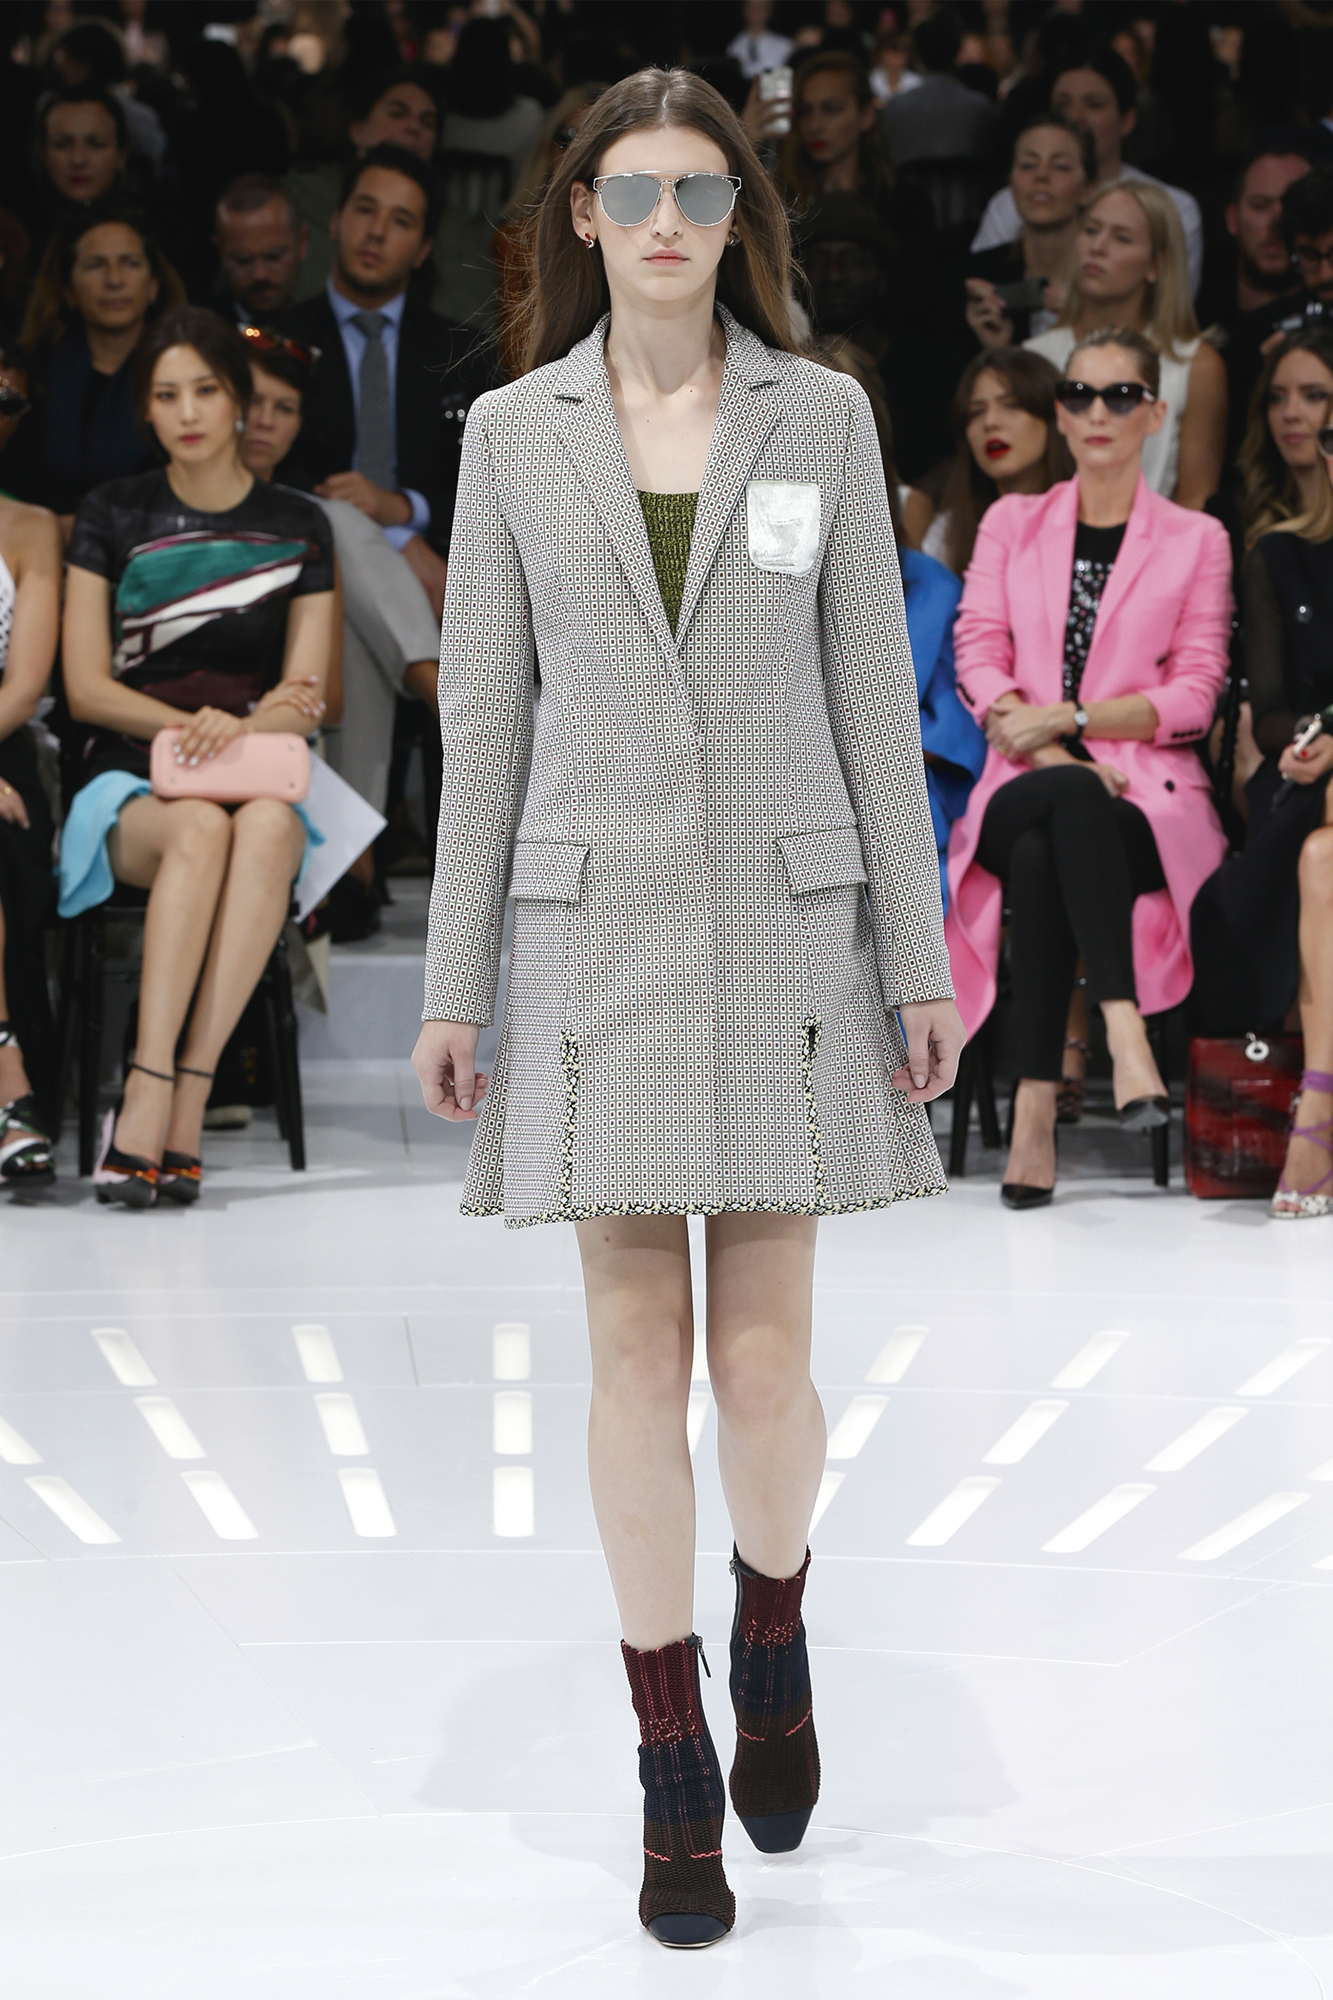 New Western Fashion Christian Dior Ready To Wear Dresses Spring Summer Collection 2015 (23)